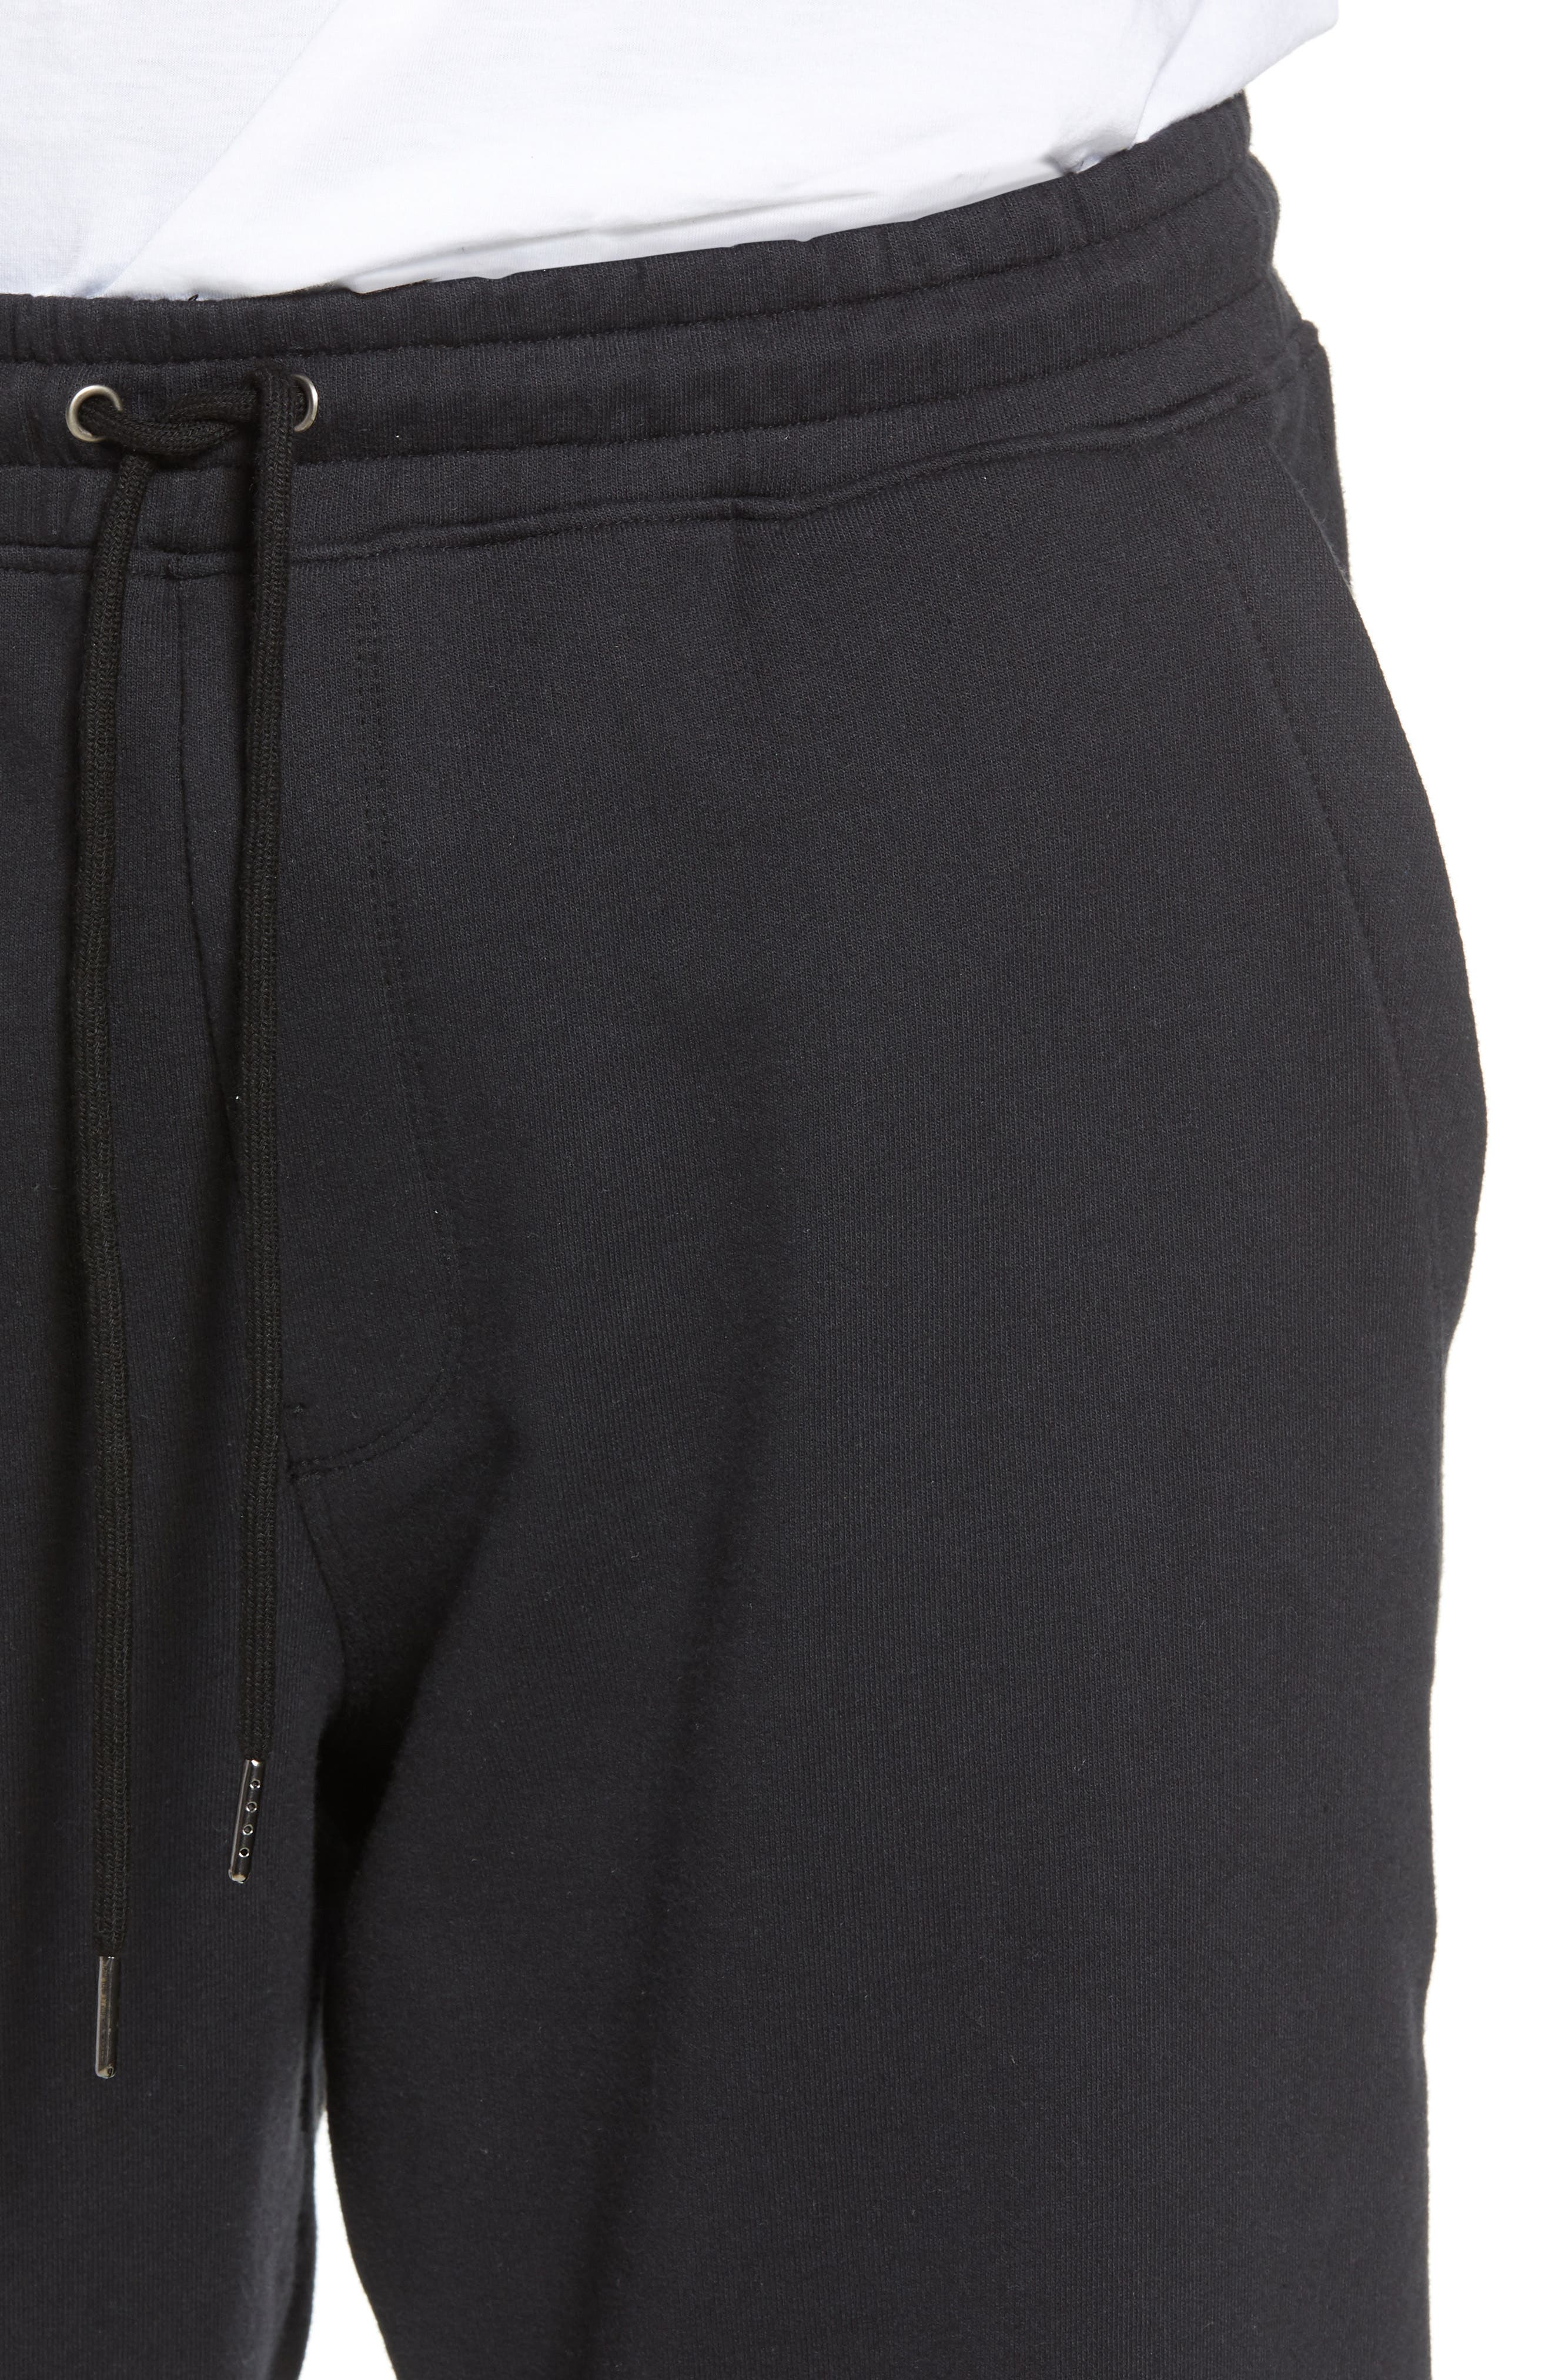 Cropped Sweatpants,                             Alternate thumbnail 4, color,                             Black Rock